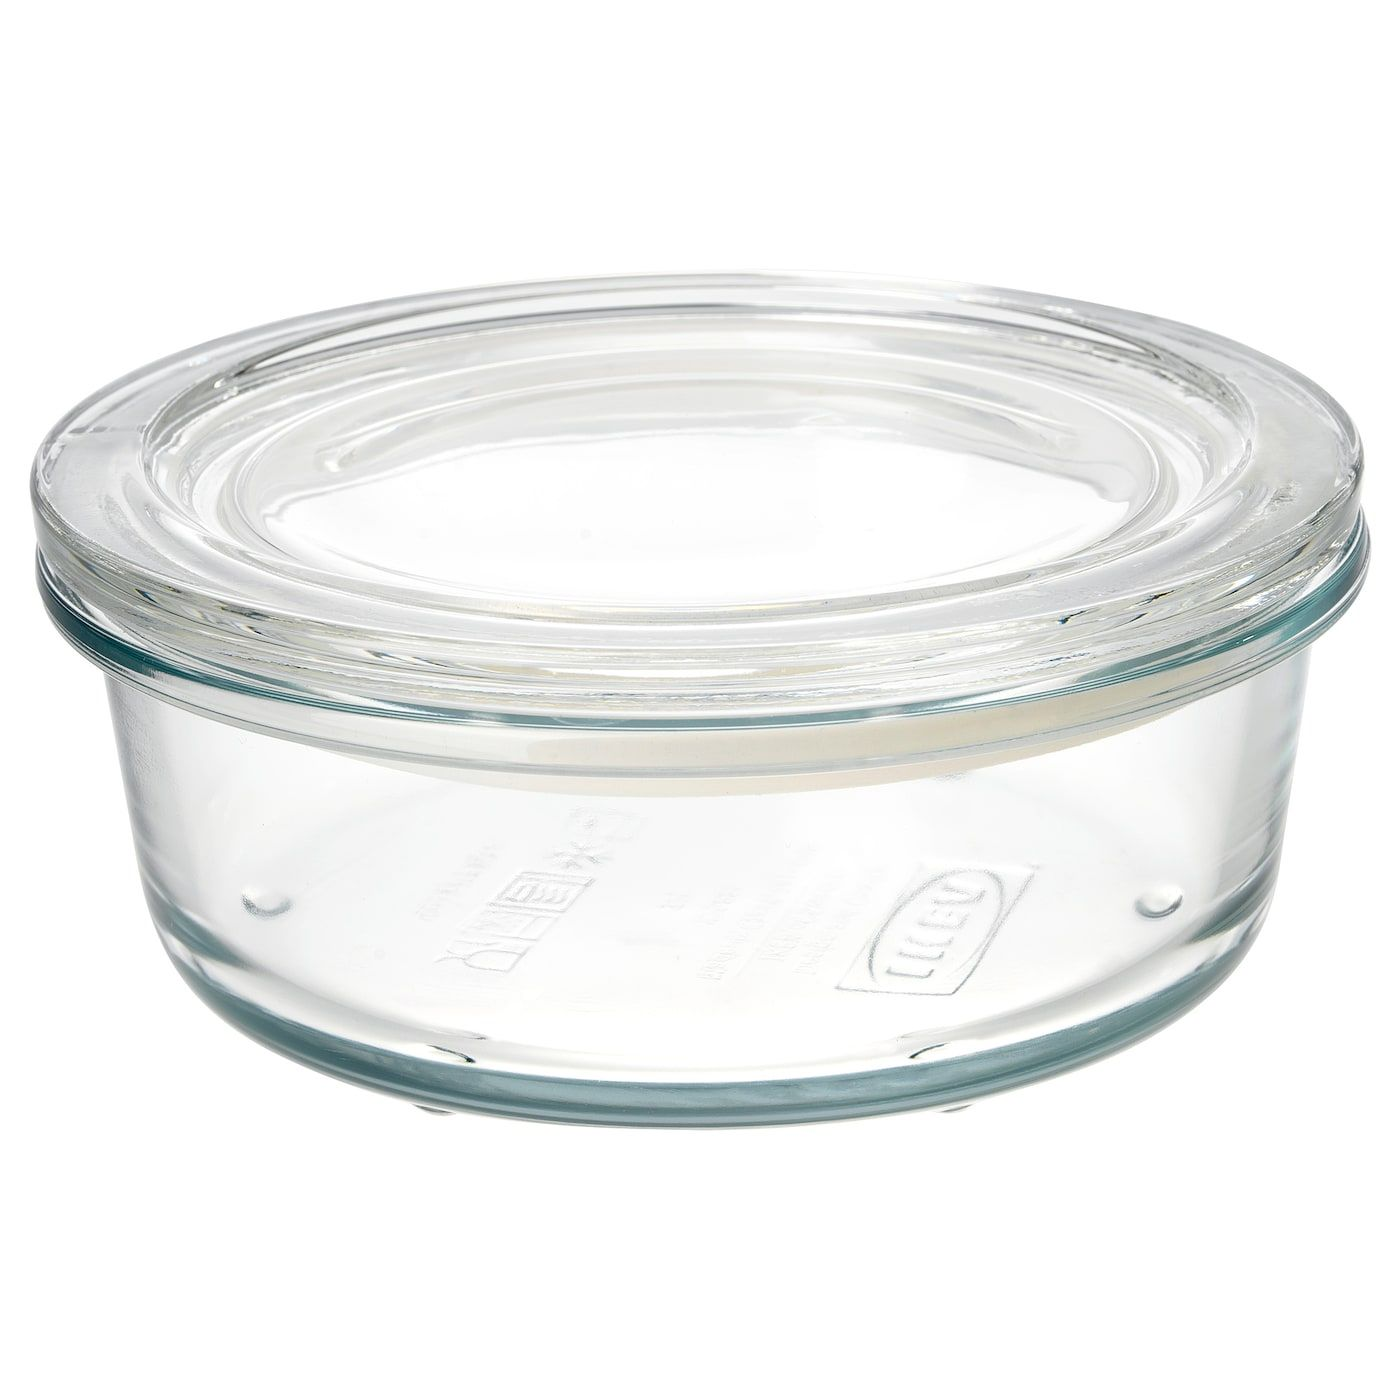 Ikea 365 Food Container With Lid Glass Shop Ikea Ca Ikea Verre Ikea Recipients Alimentaires Couvercle